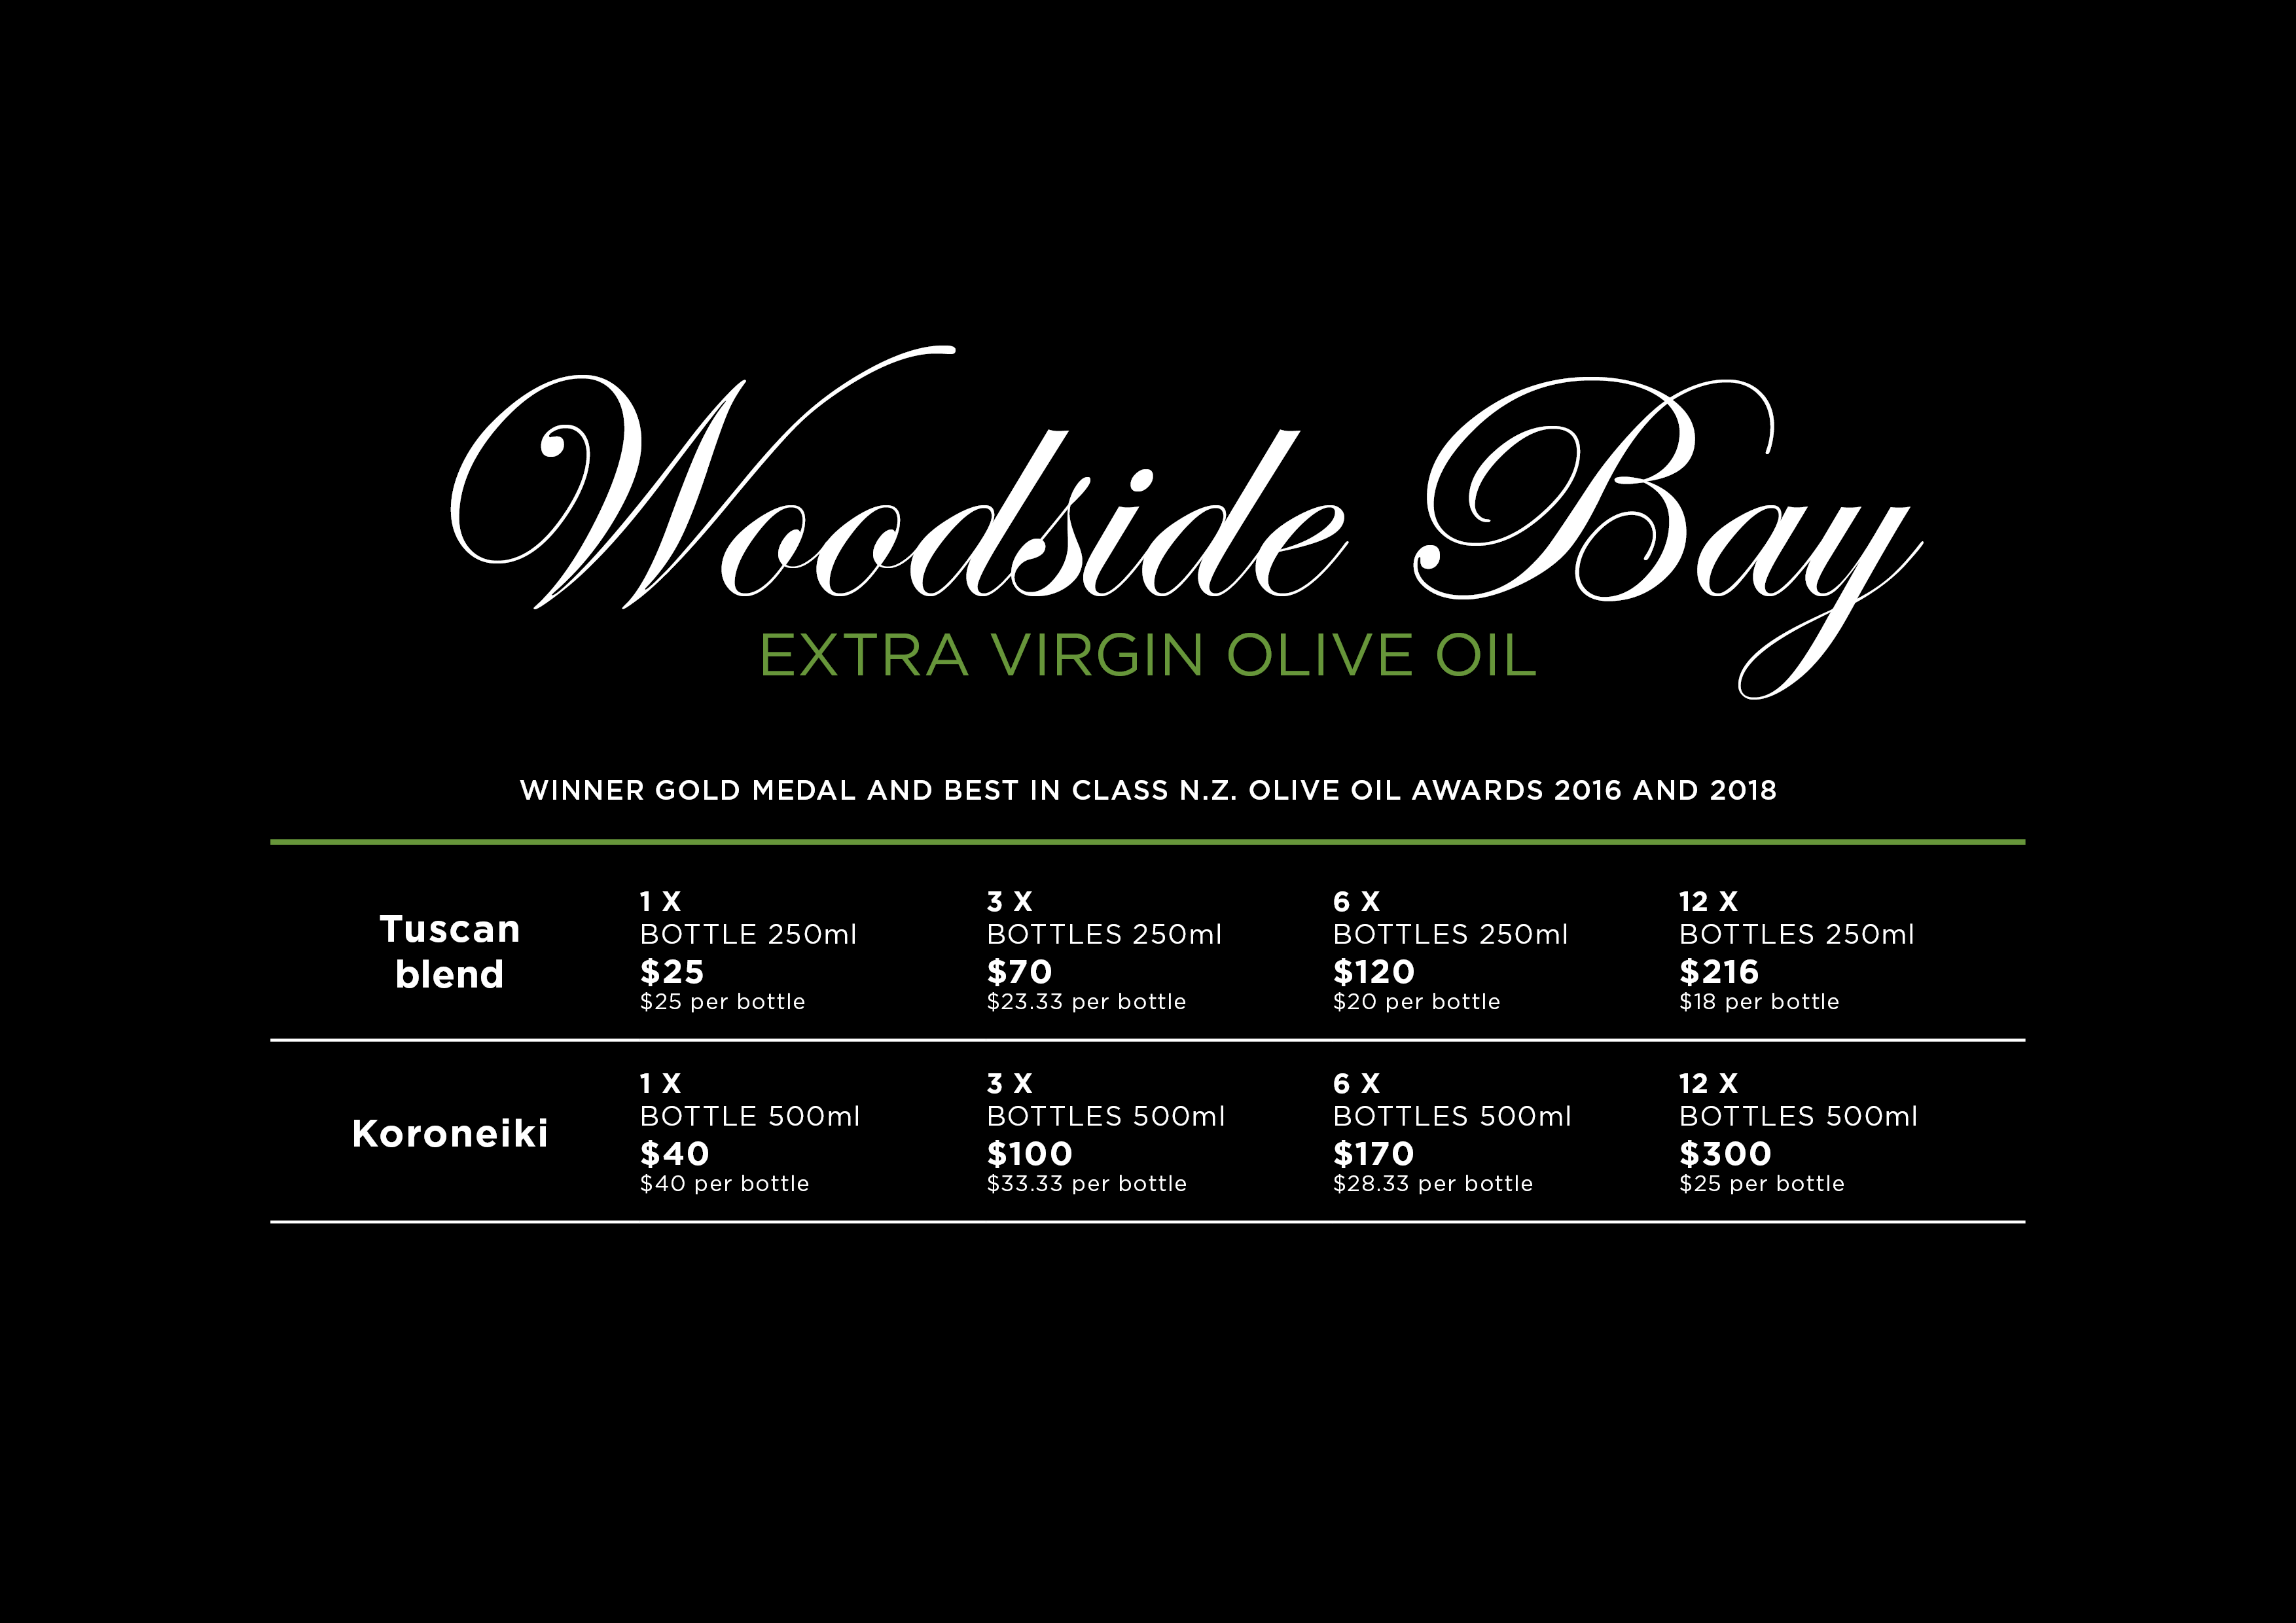 Woodside Bay Extra Virgin Olive Oil Price List September 2019